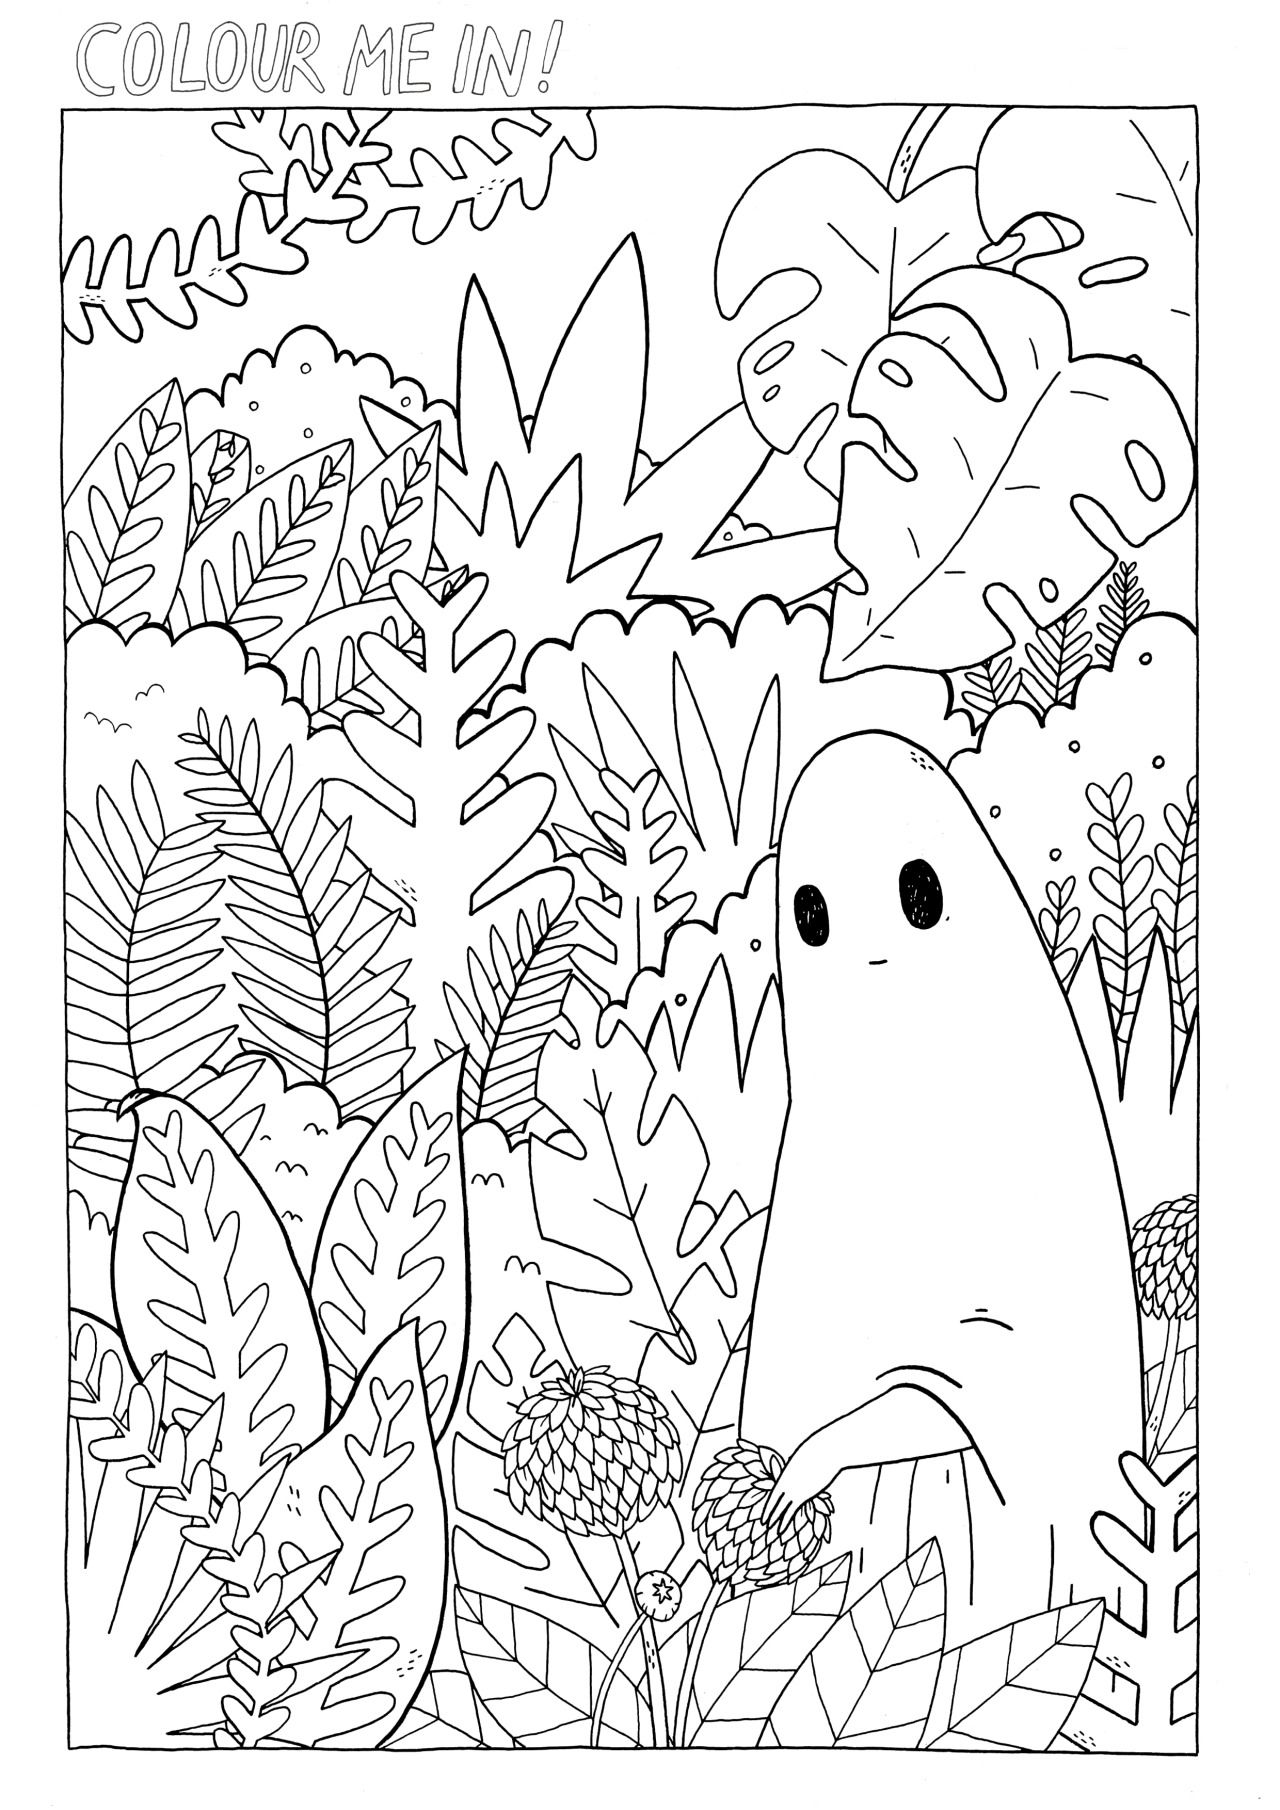 Printable Ghost Coloring Pages For Kids Cool2bkids Coloring Pages For Kids Halloween Coloring Pages Coloring Pages